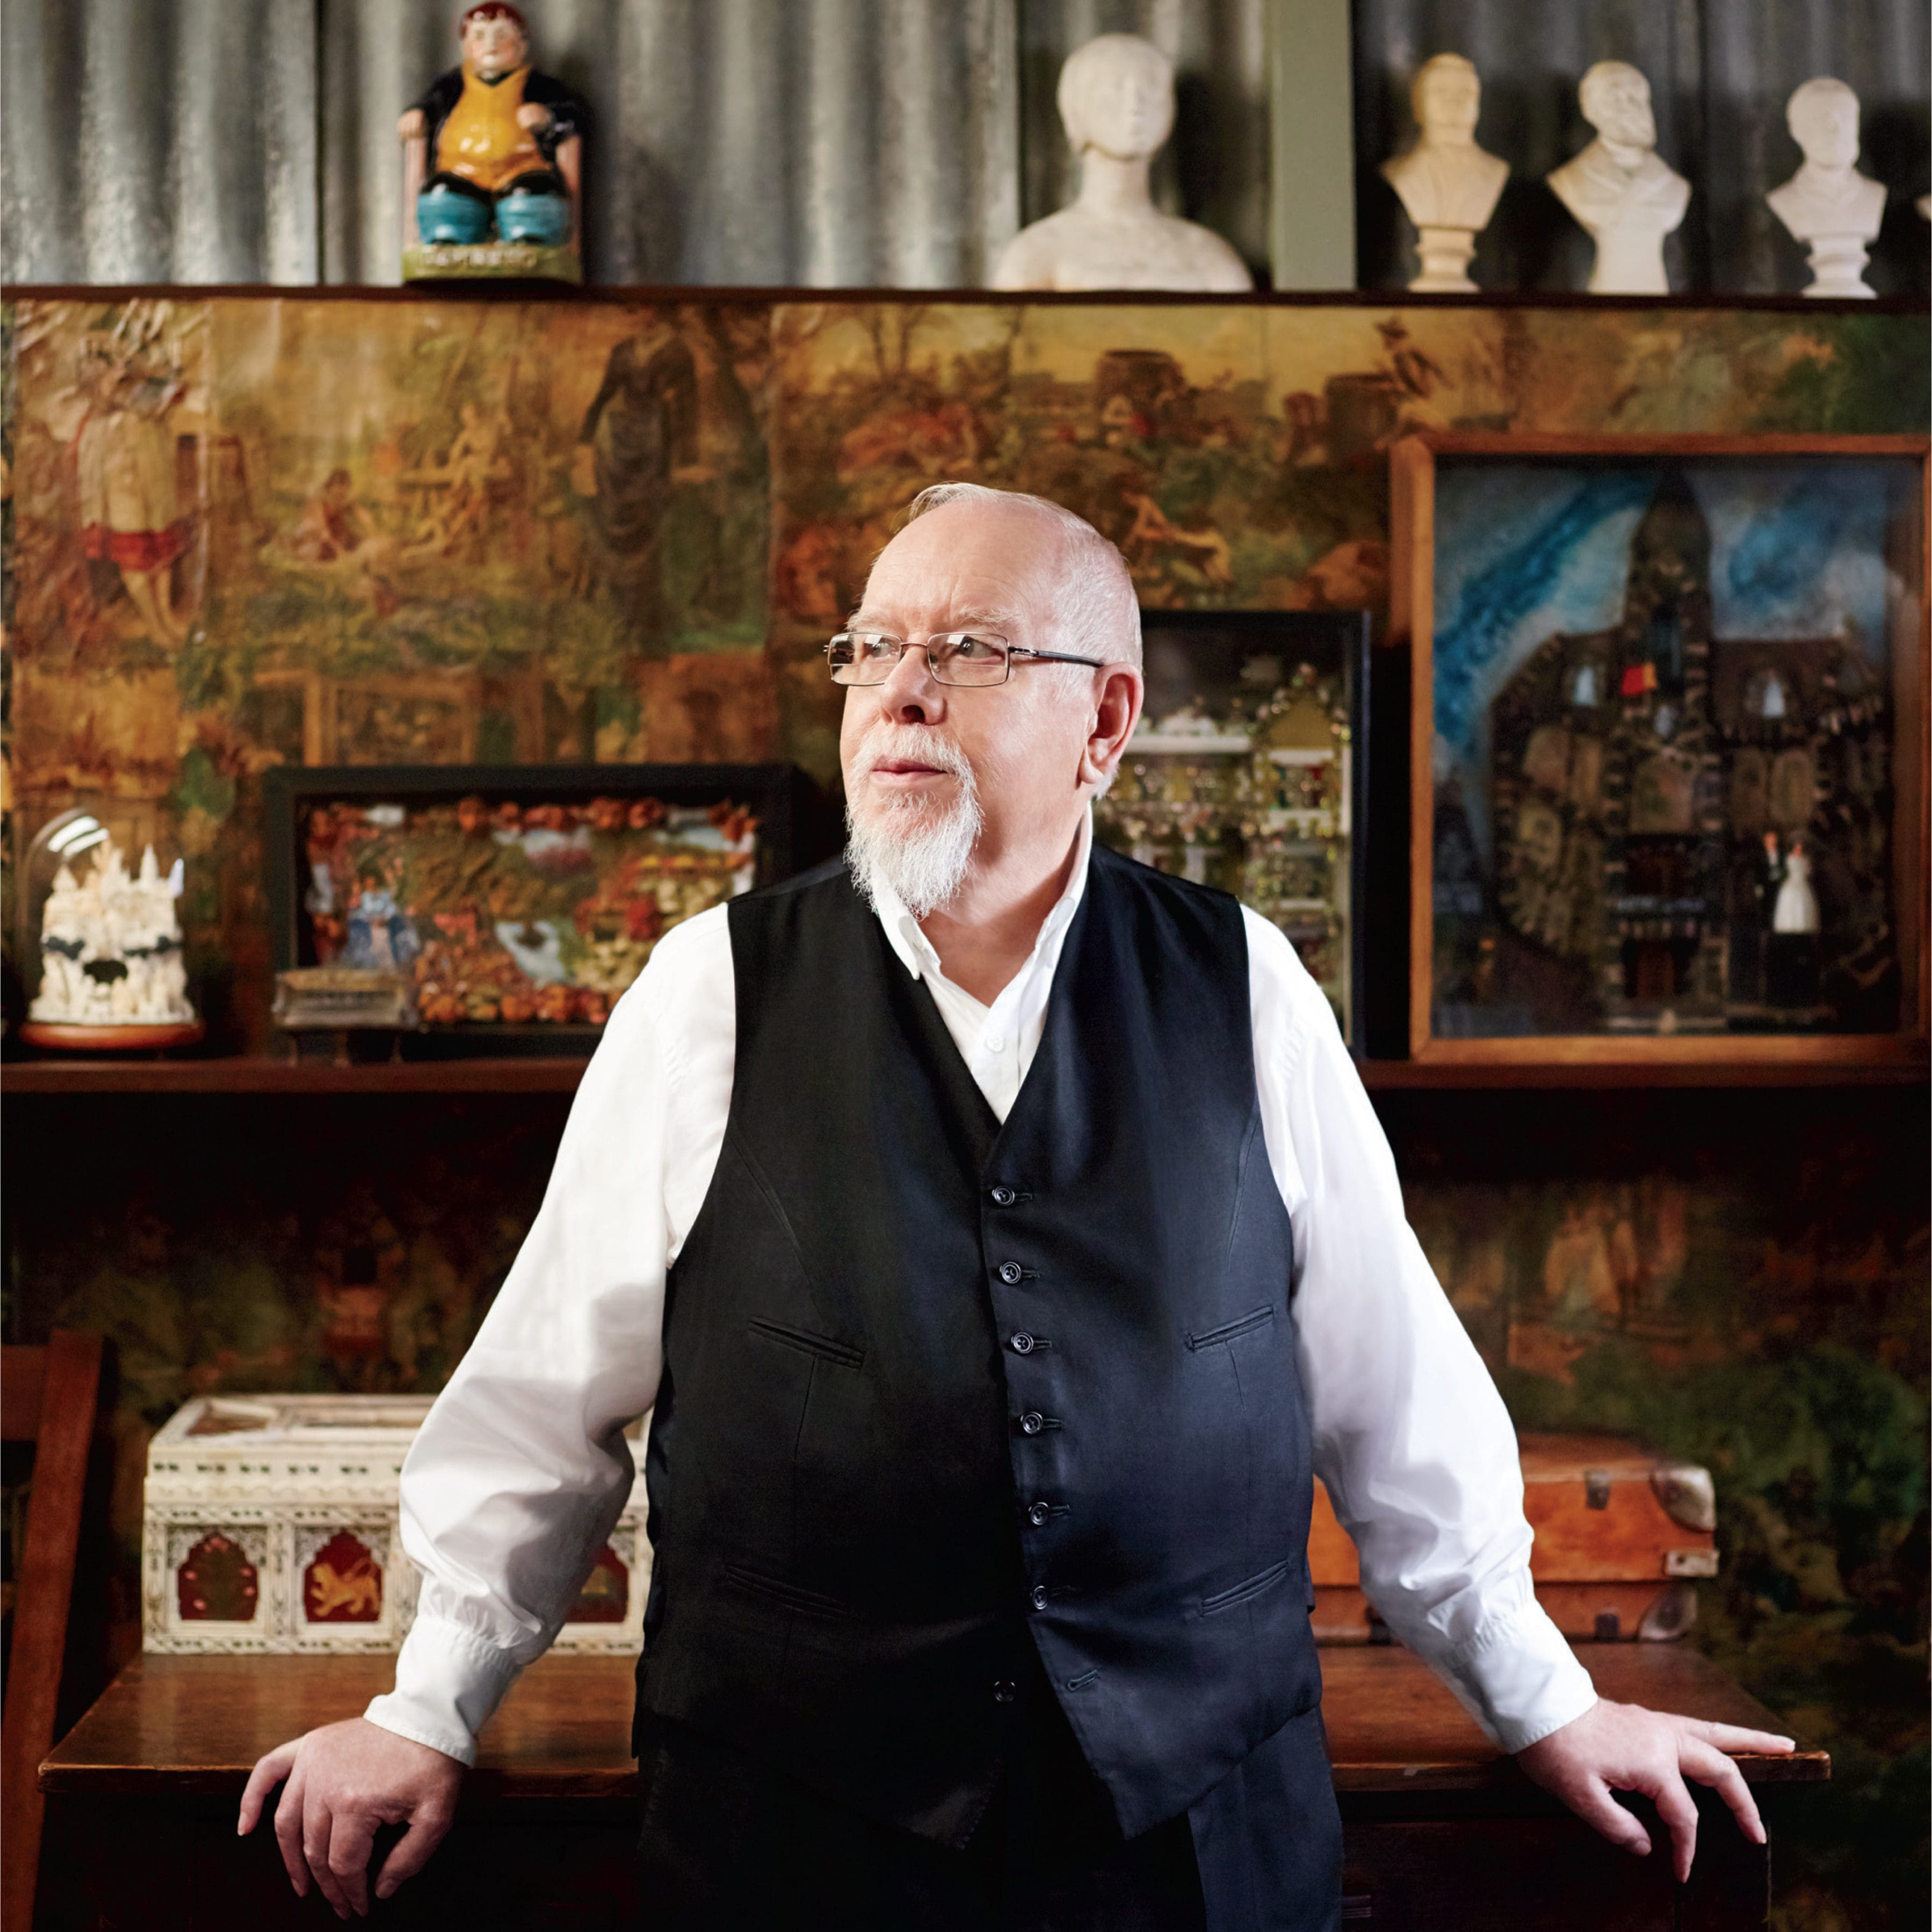 Peter Blake's 'He's a Fan' campaign portrait by Mary McCartney